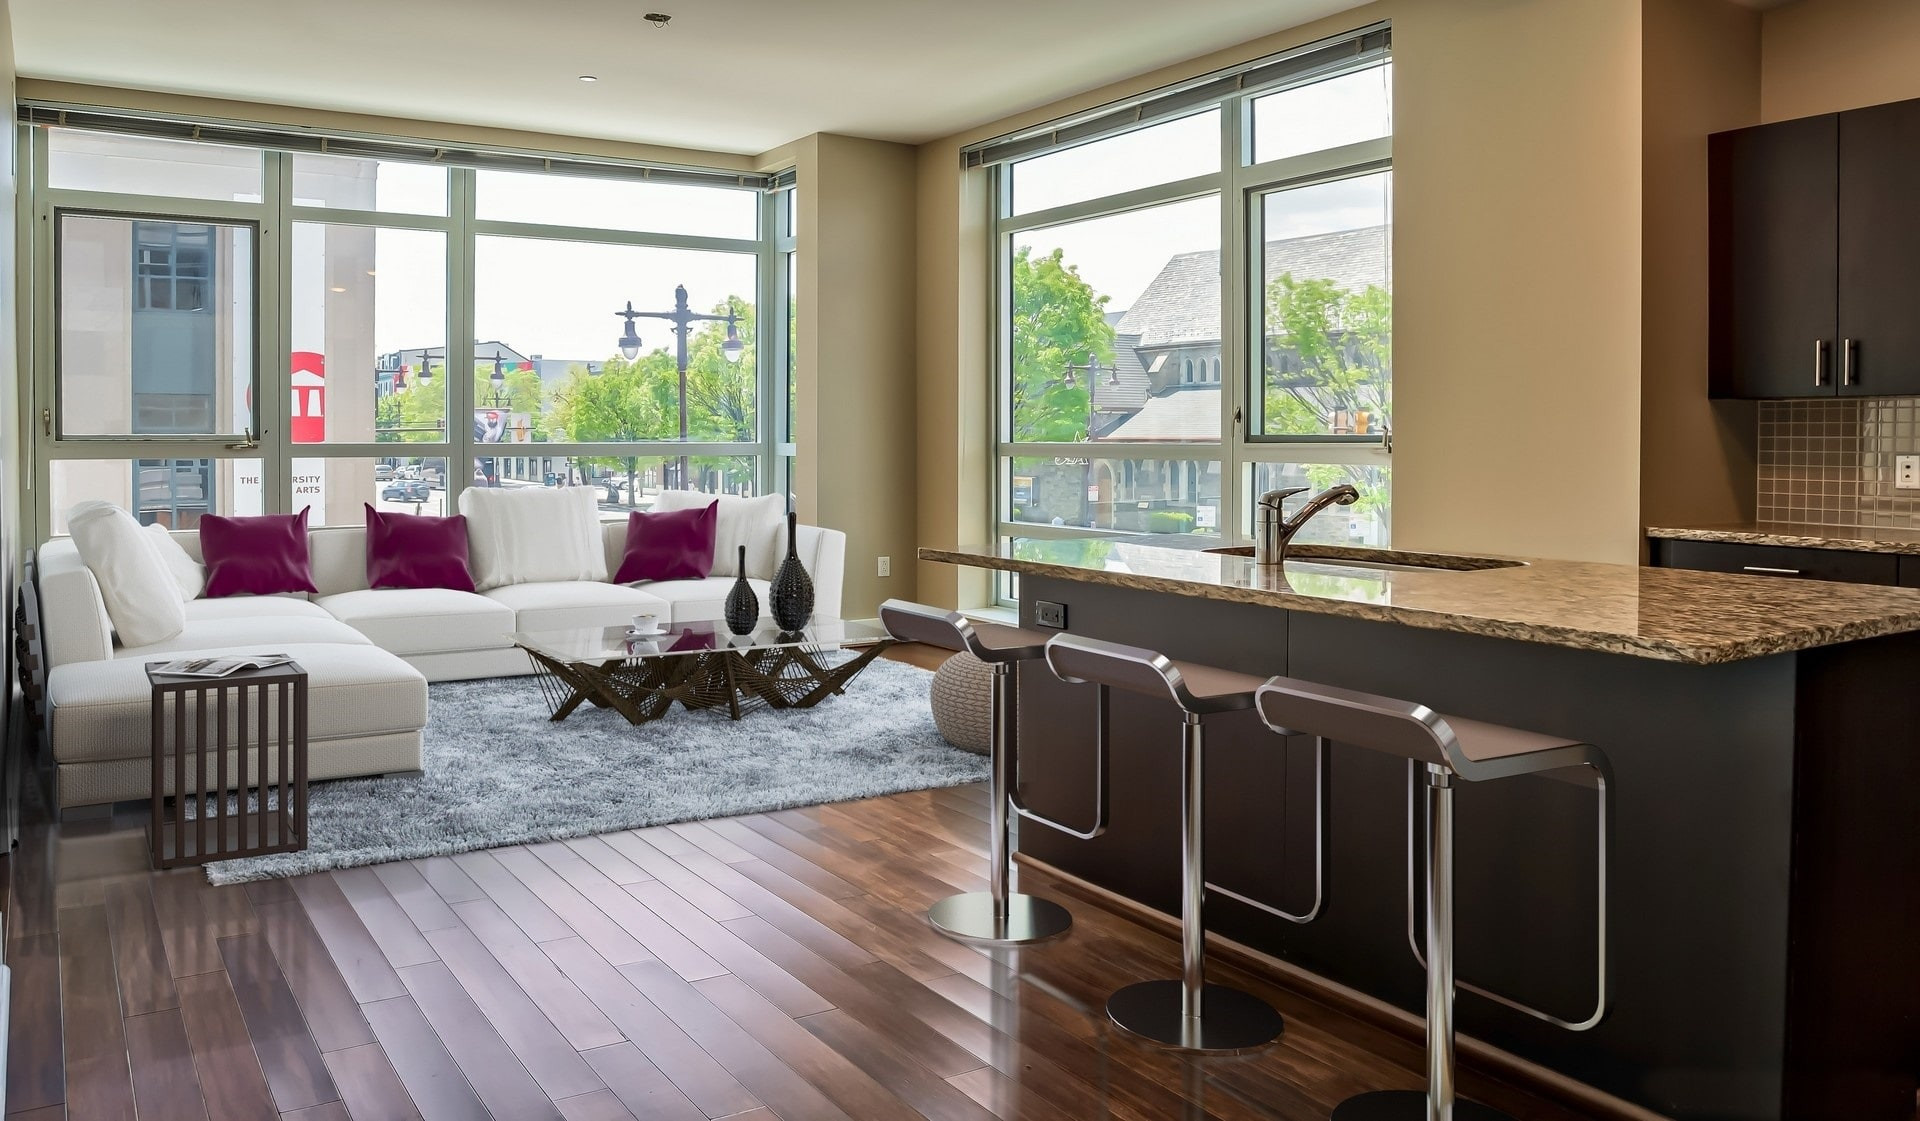 imperial walnut hardwood flooring of 100 best studio apartments in philadelphia pa with pics for 2103f03efd84746a4441c5a361bc74cd